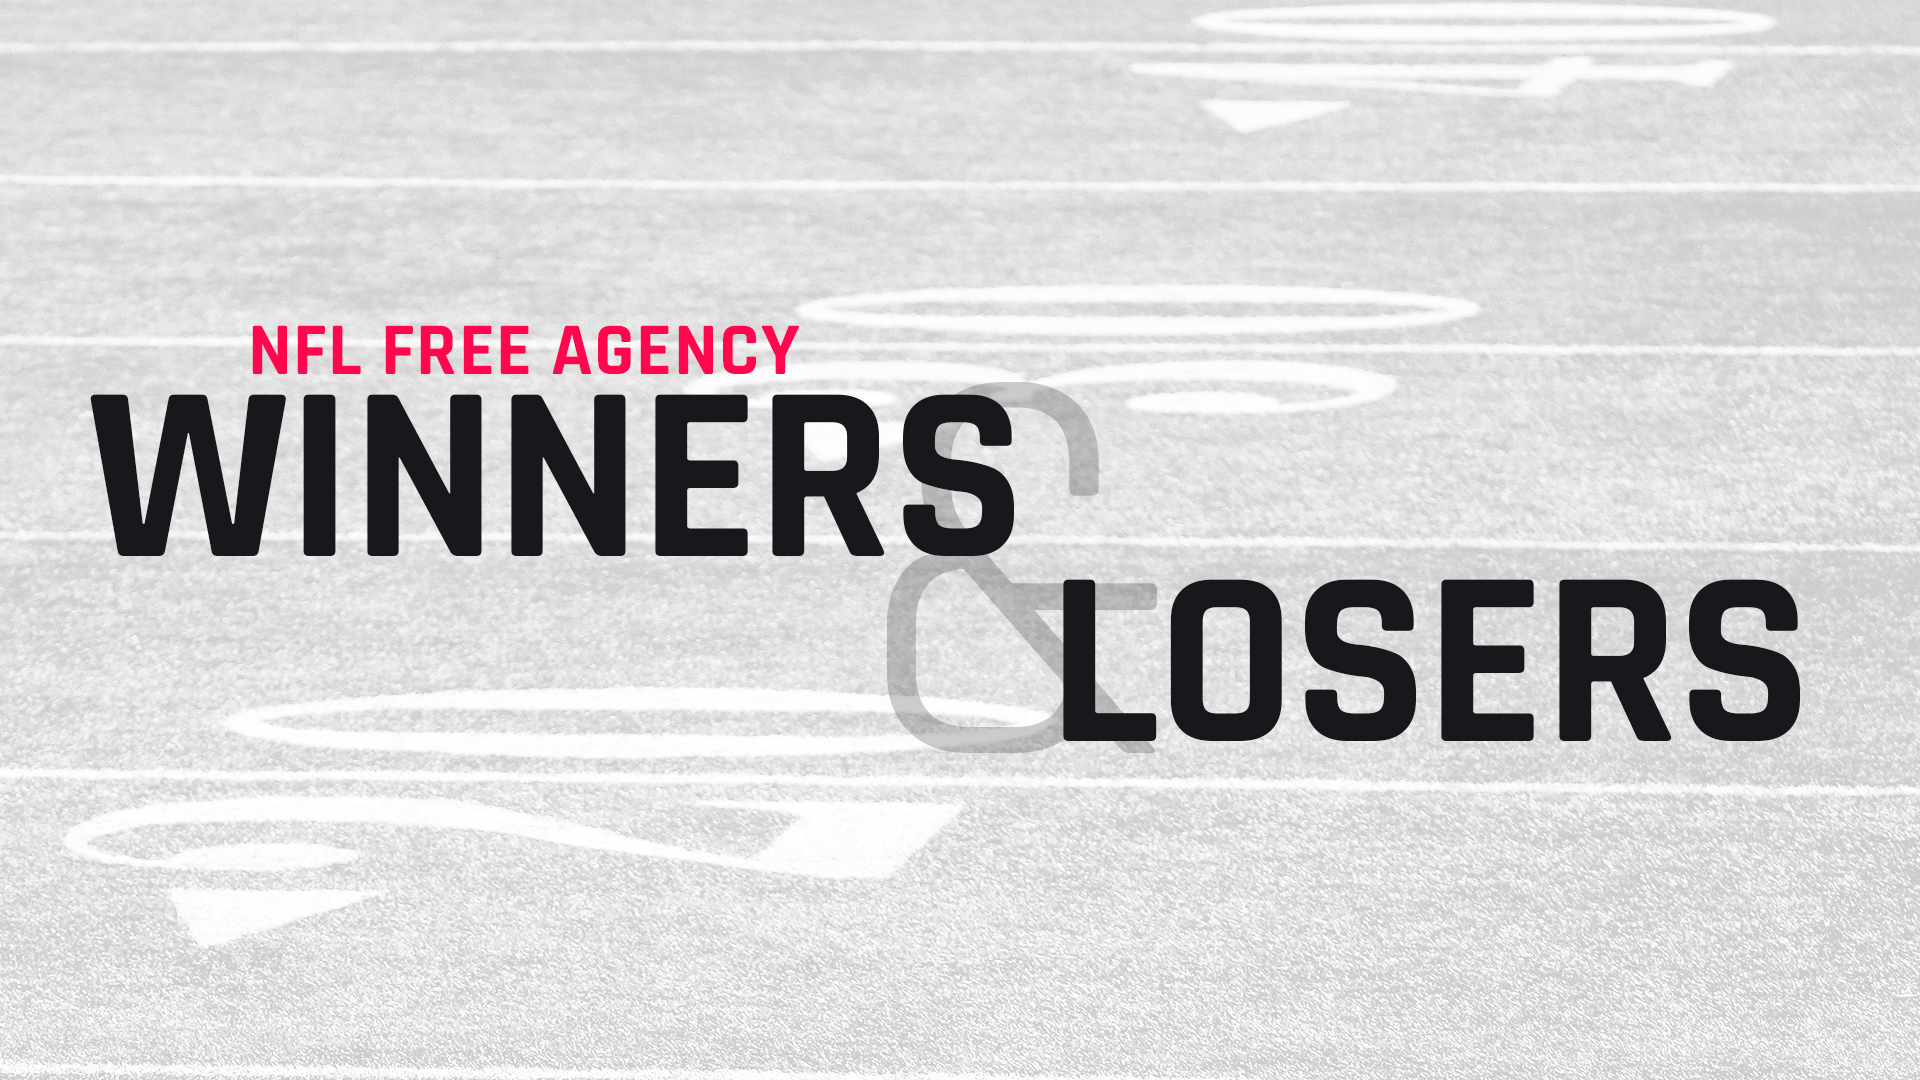 Winning and losing free NFL agencies: Patriots, Bucs, Jets have set the pace;  The Bears settle for the QB fragments after Russell Wilson's trade bustle